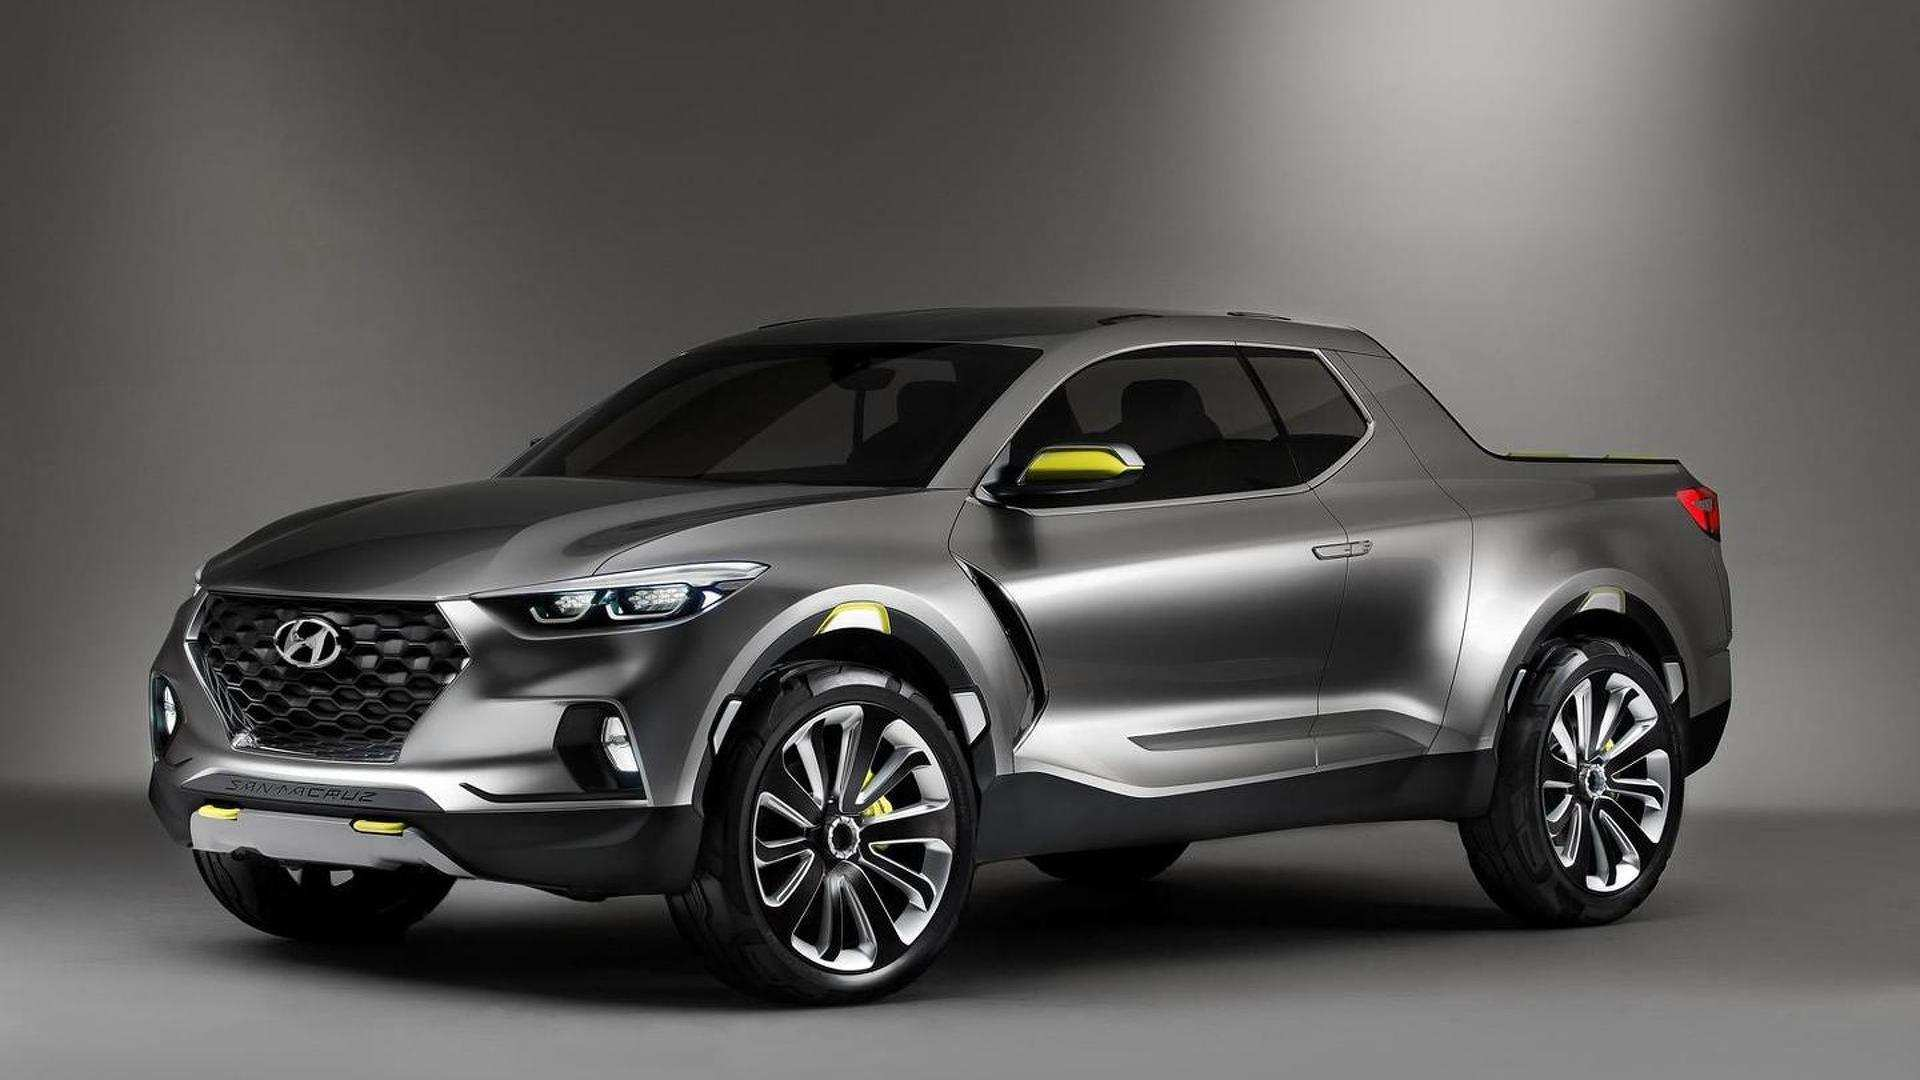 84 All New Hyundai Santa Cruz 2020 Ratings with Hyundai Santa Cruz 2020